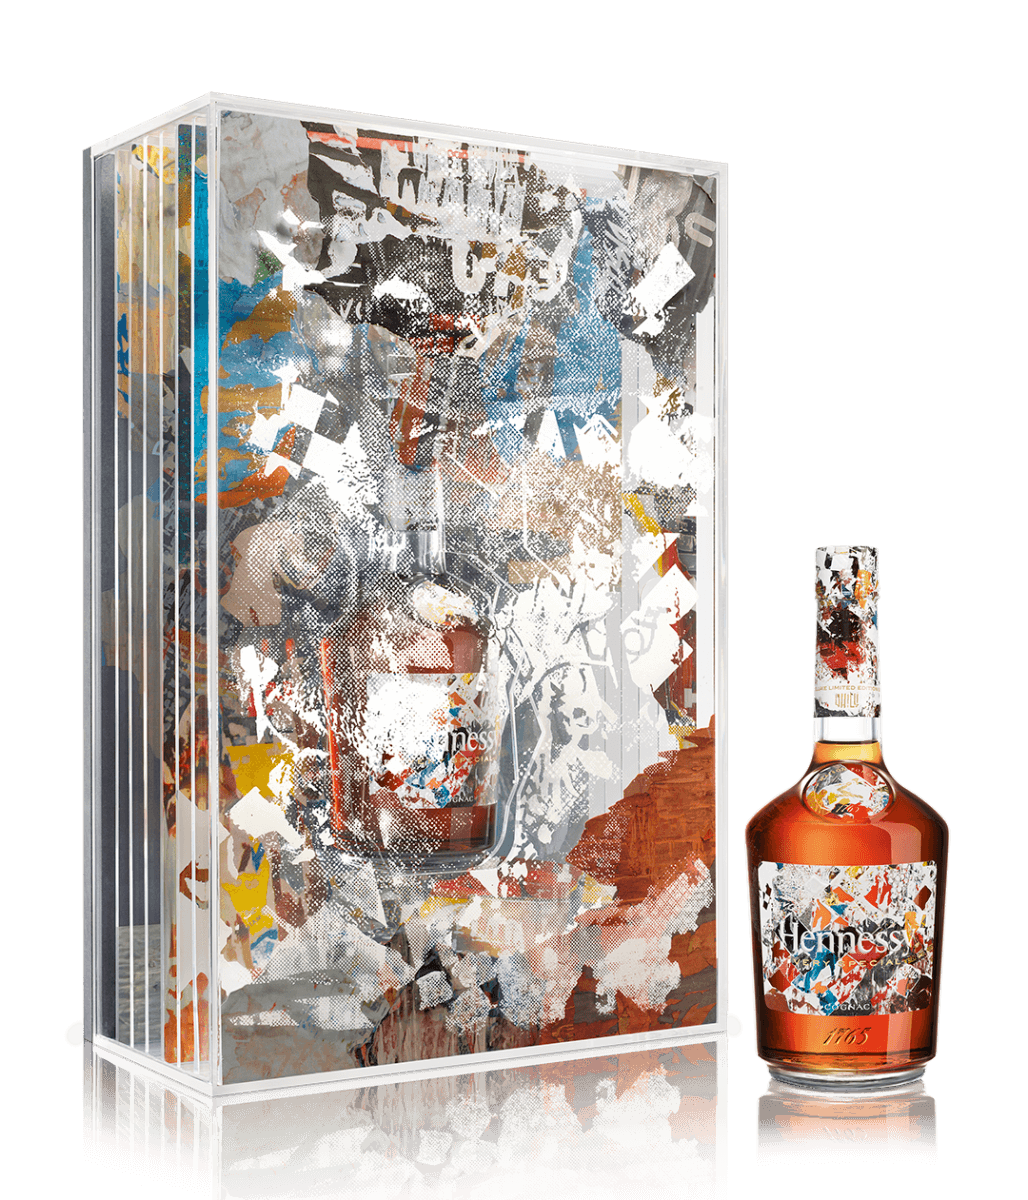 Hennessy Very Special Edition by Vhils